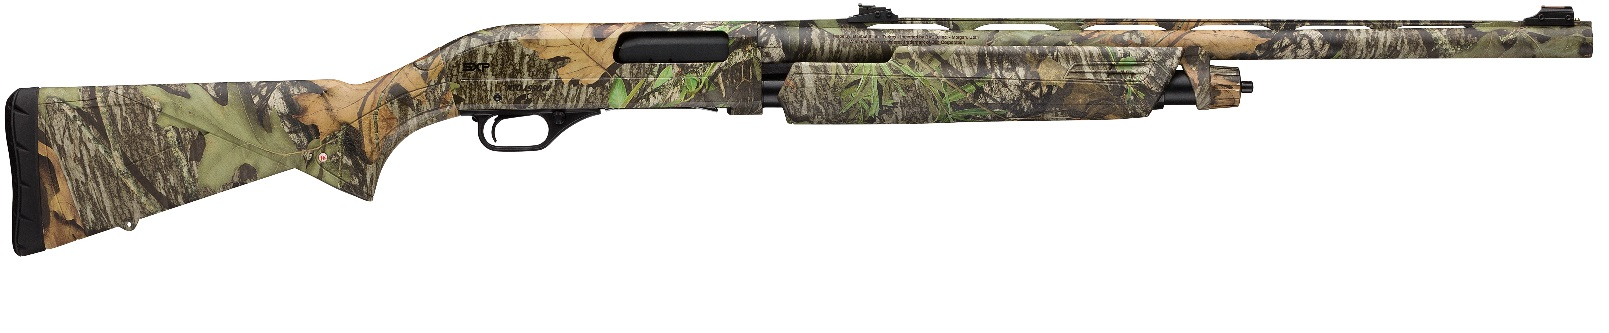 Winchester SXP Turkey Hunter 12 Gauge